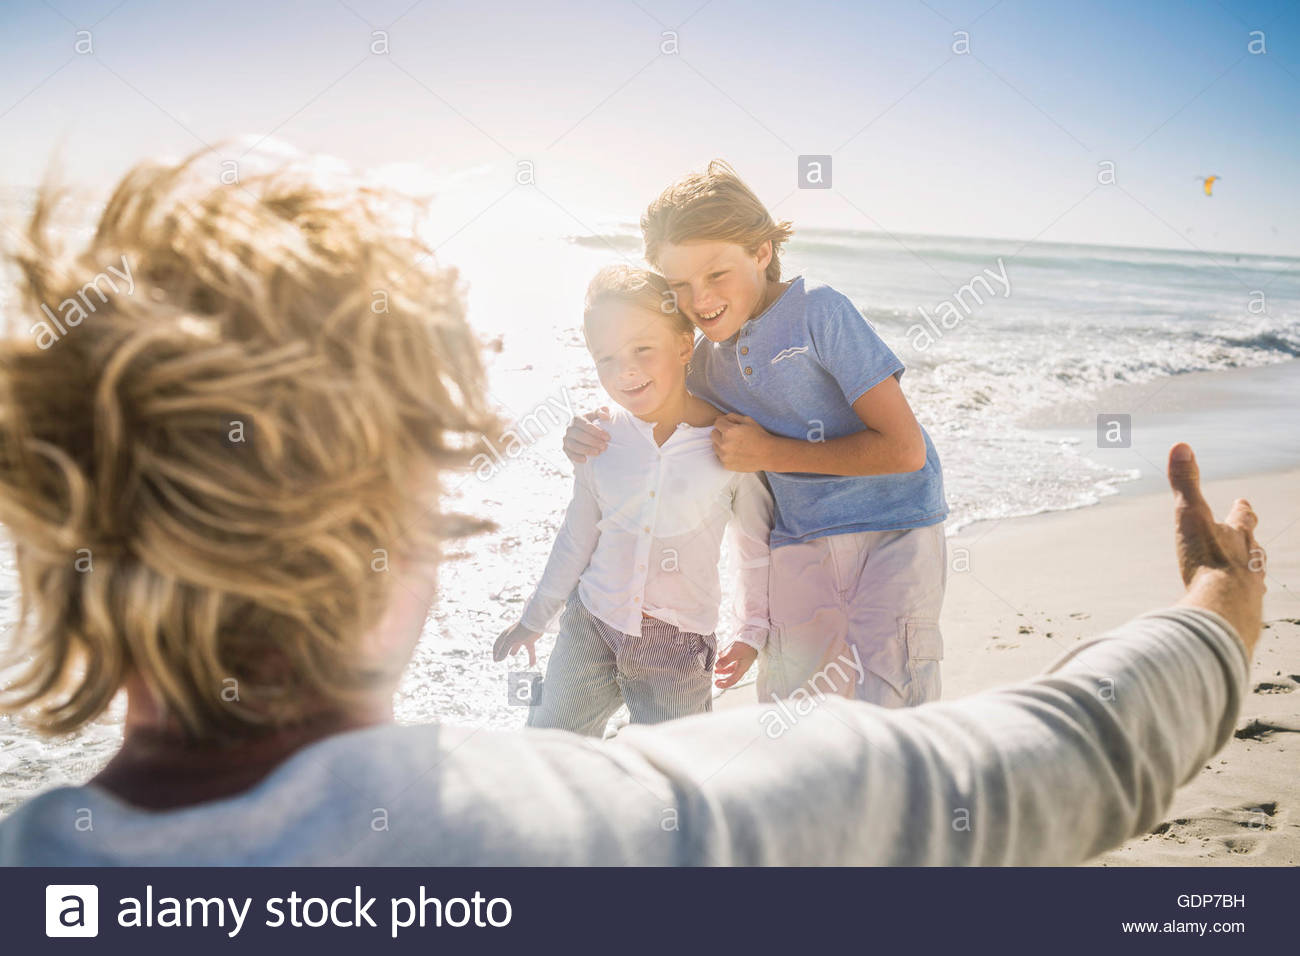 Father opening arms to sons on beach - Stock Image